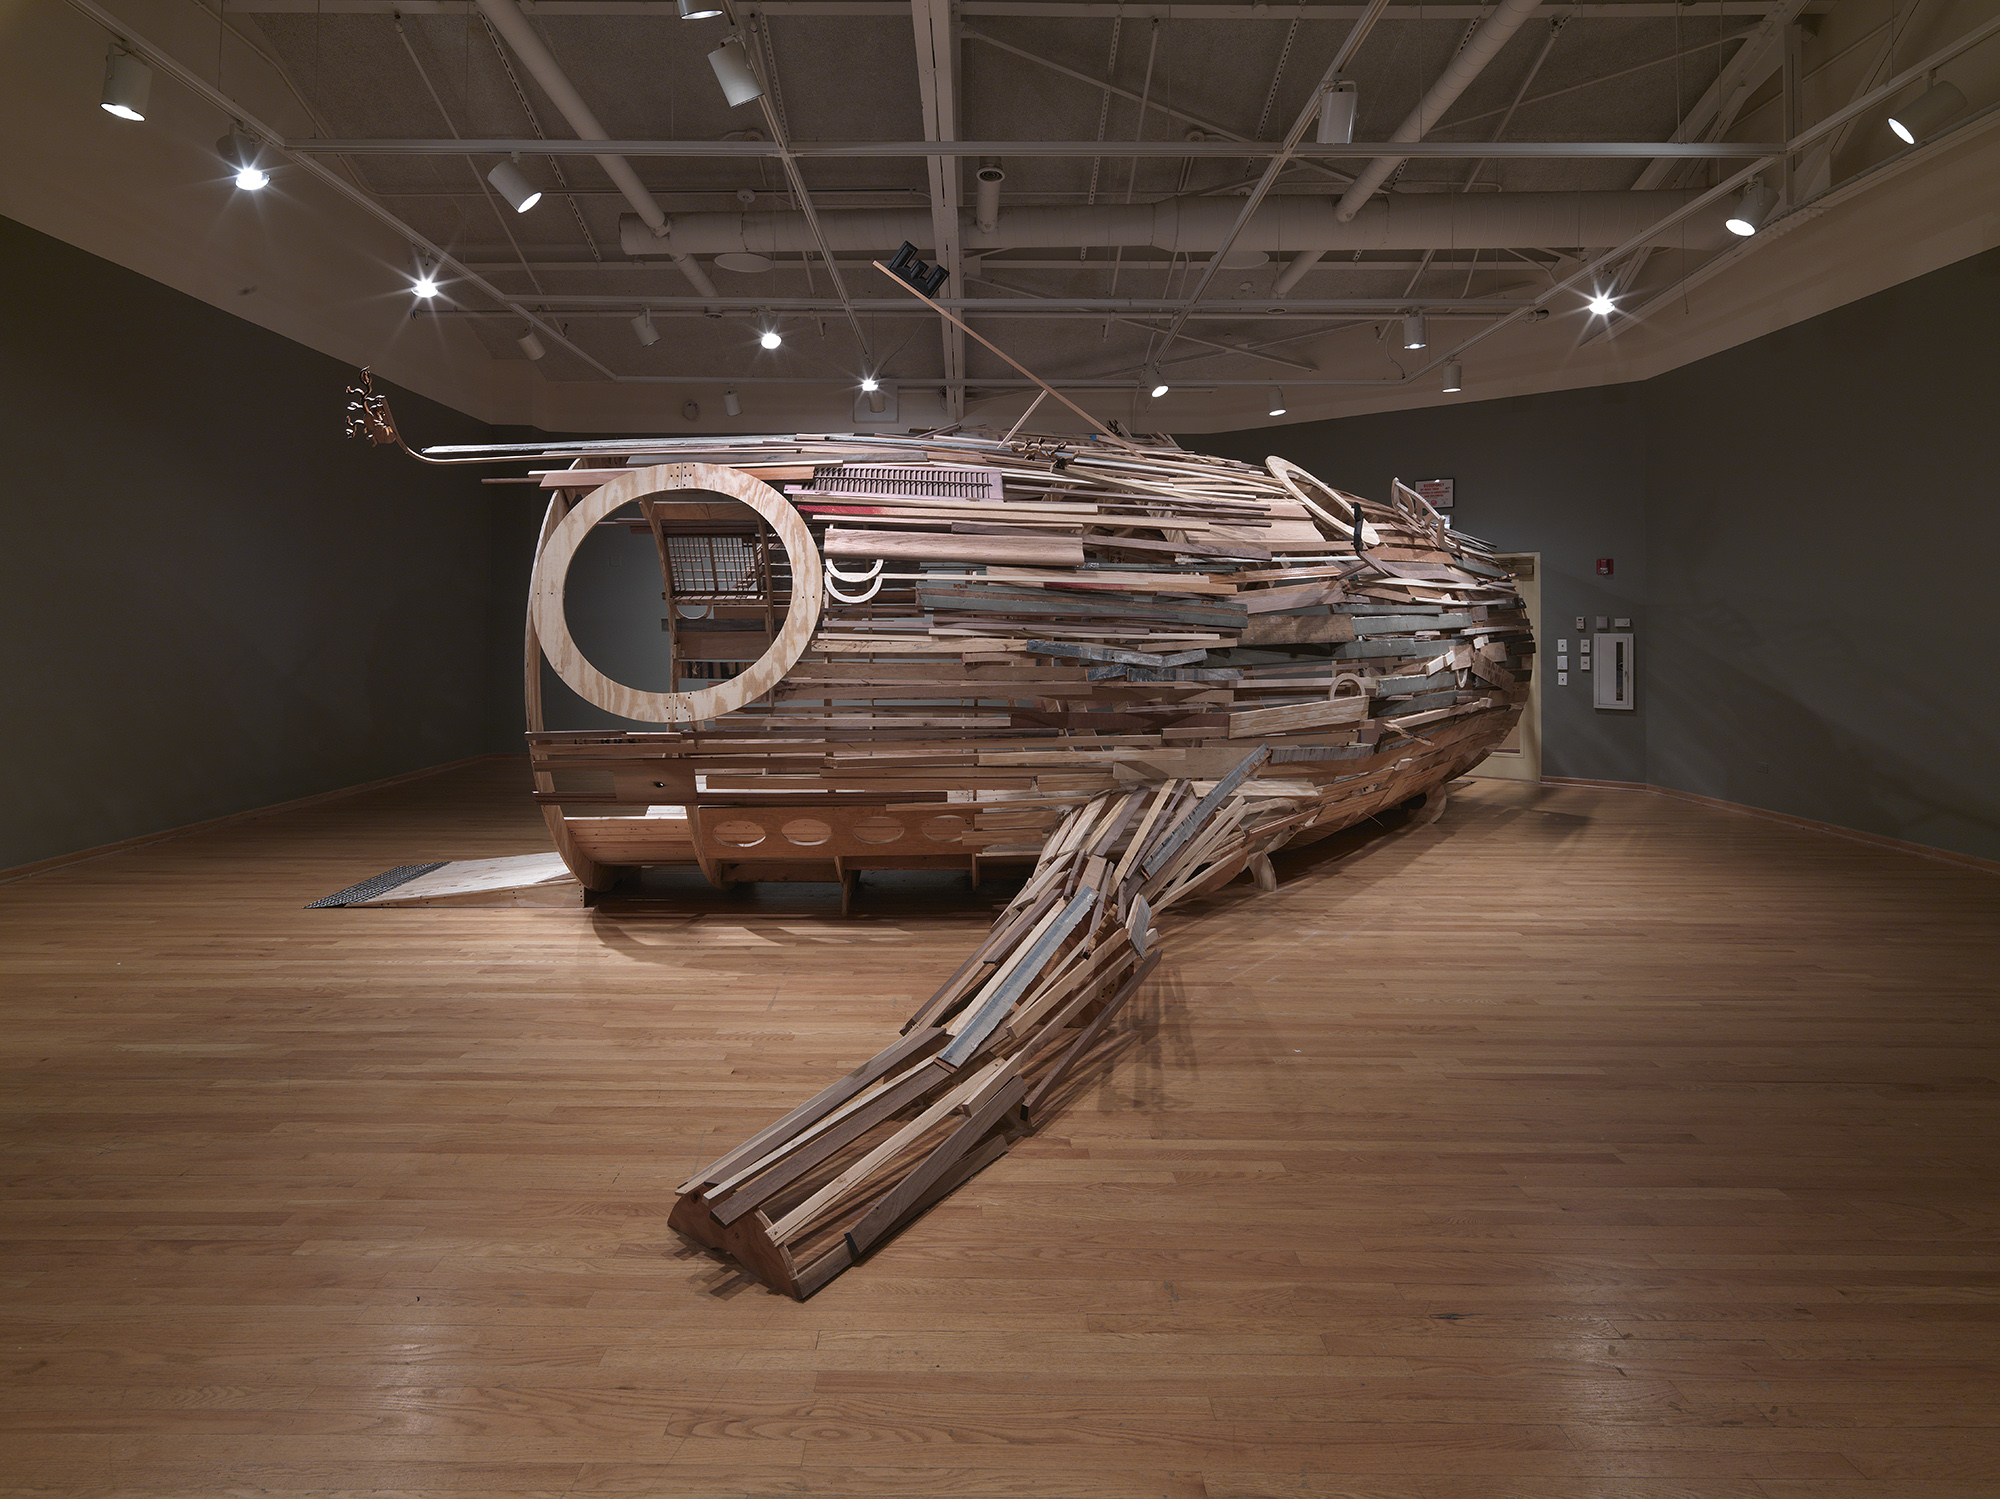 Juan Angel Chavez, Neptuno, found materials, 2011, 12 x 28 x 8 feet